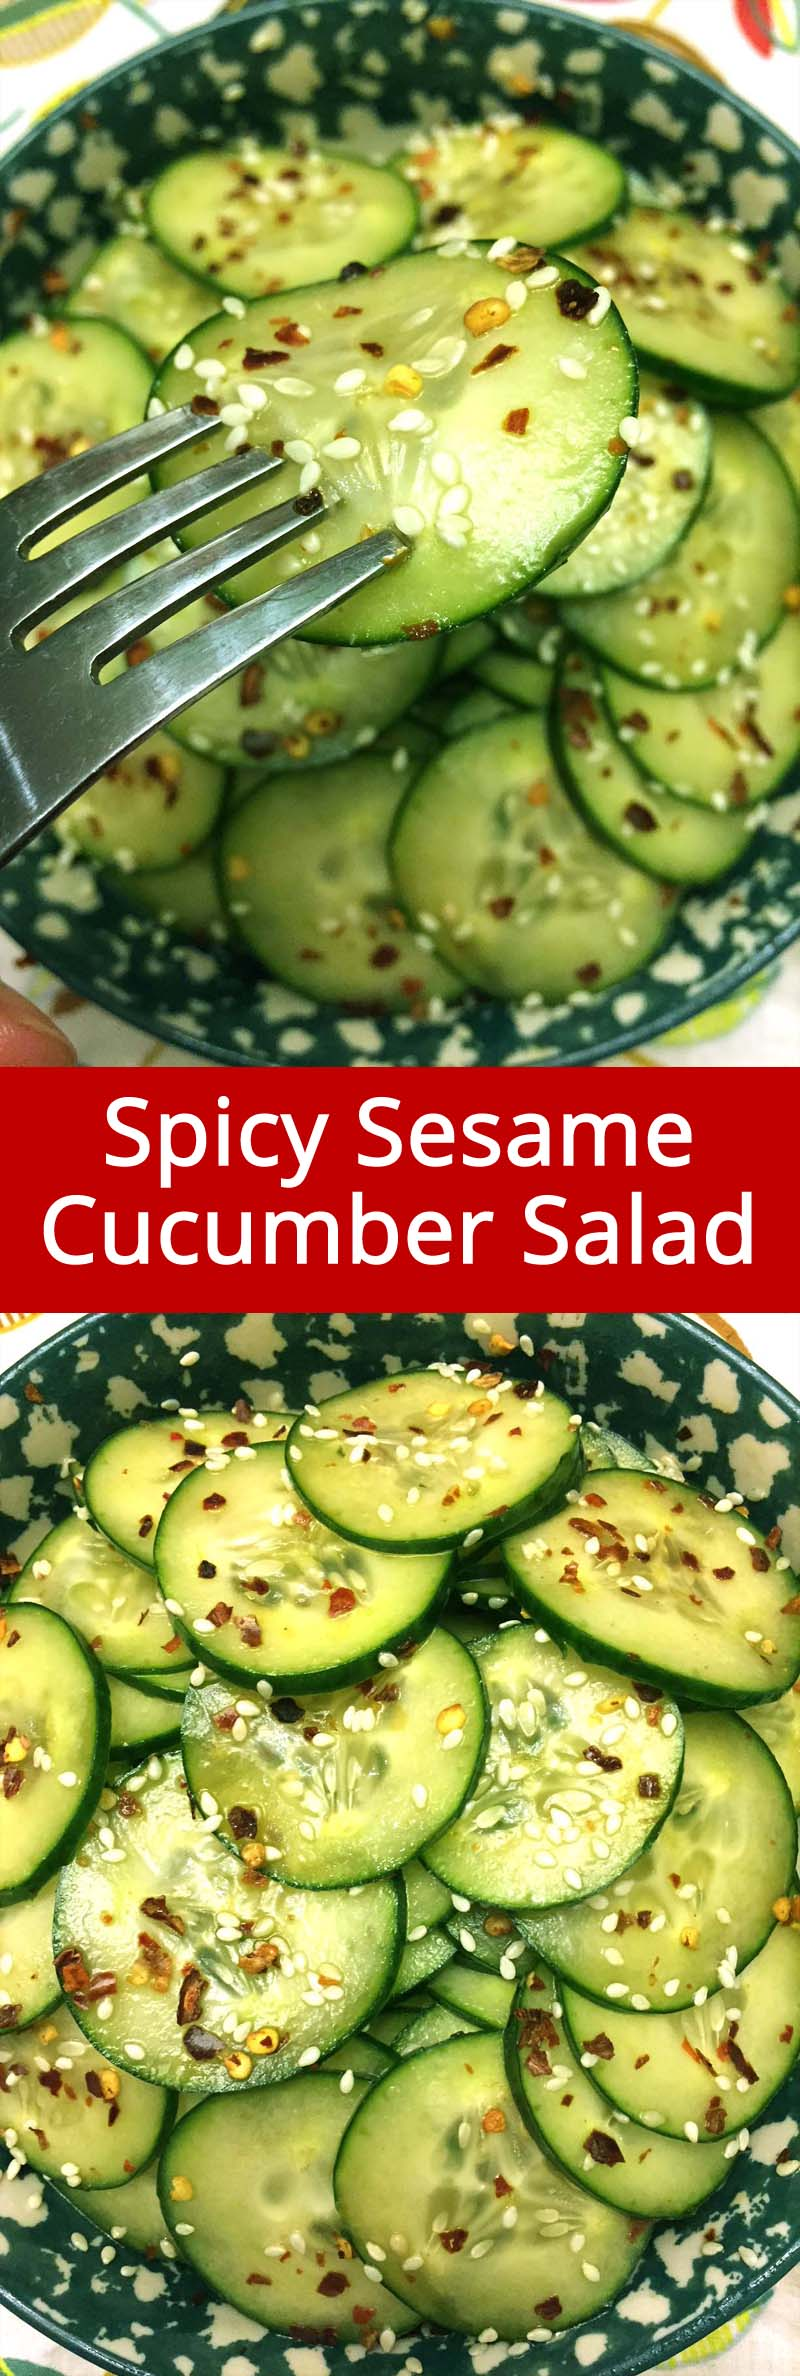 I love this Asian sesame cucumber salad! So yummy marinated in vinegar with sesame seeds and spicy red pepper flakes, mmmmm! So addictive, I can crunch those sesame cucumber slices all day!